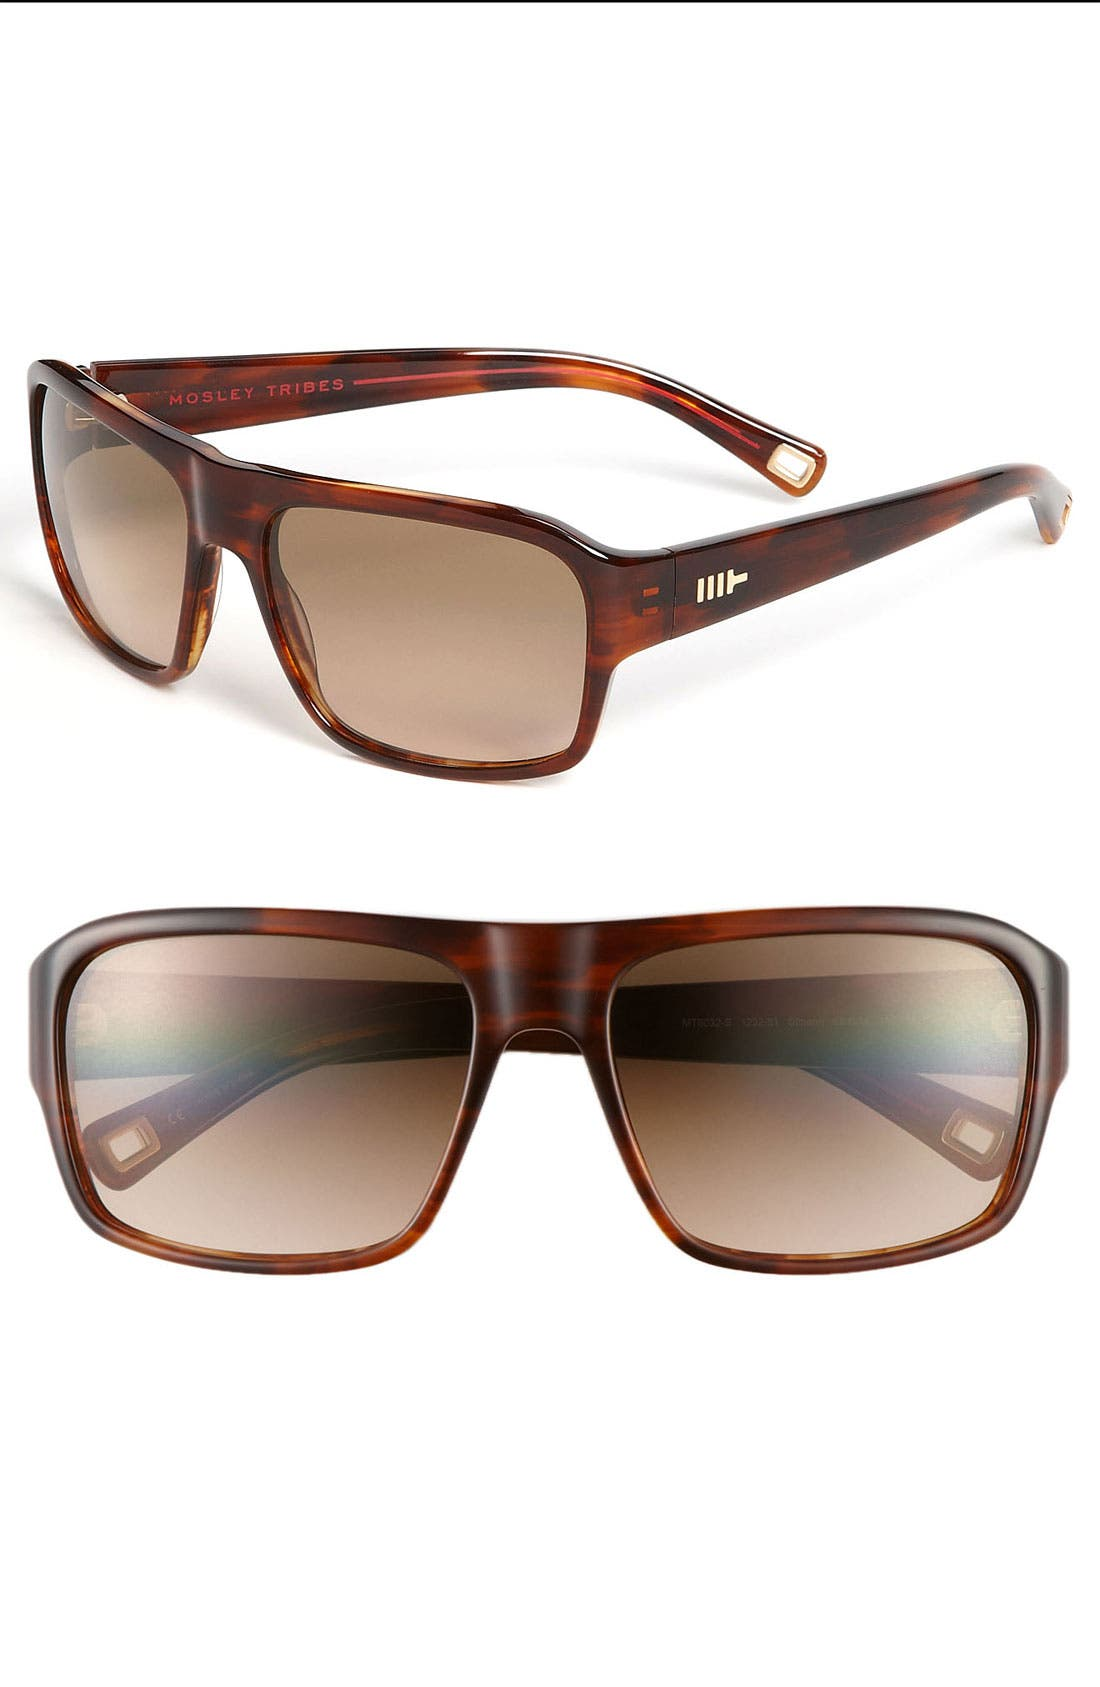 Alternate Image 1 Selected - Mosley Tribes 'Simeon' Sunglasses